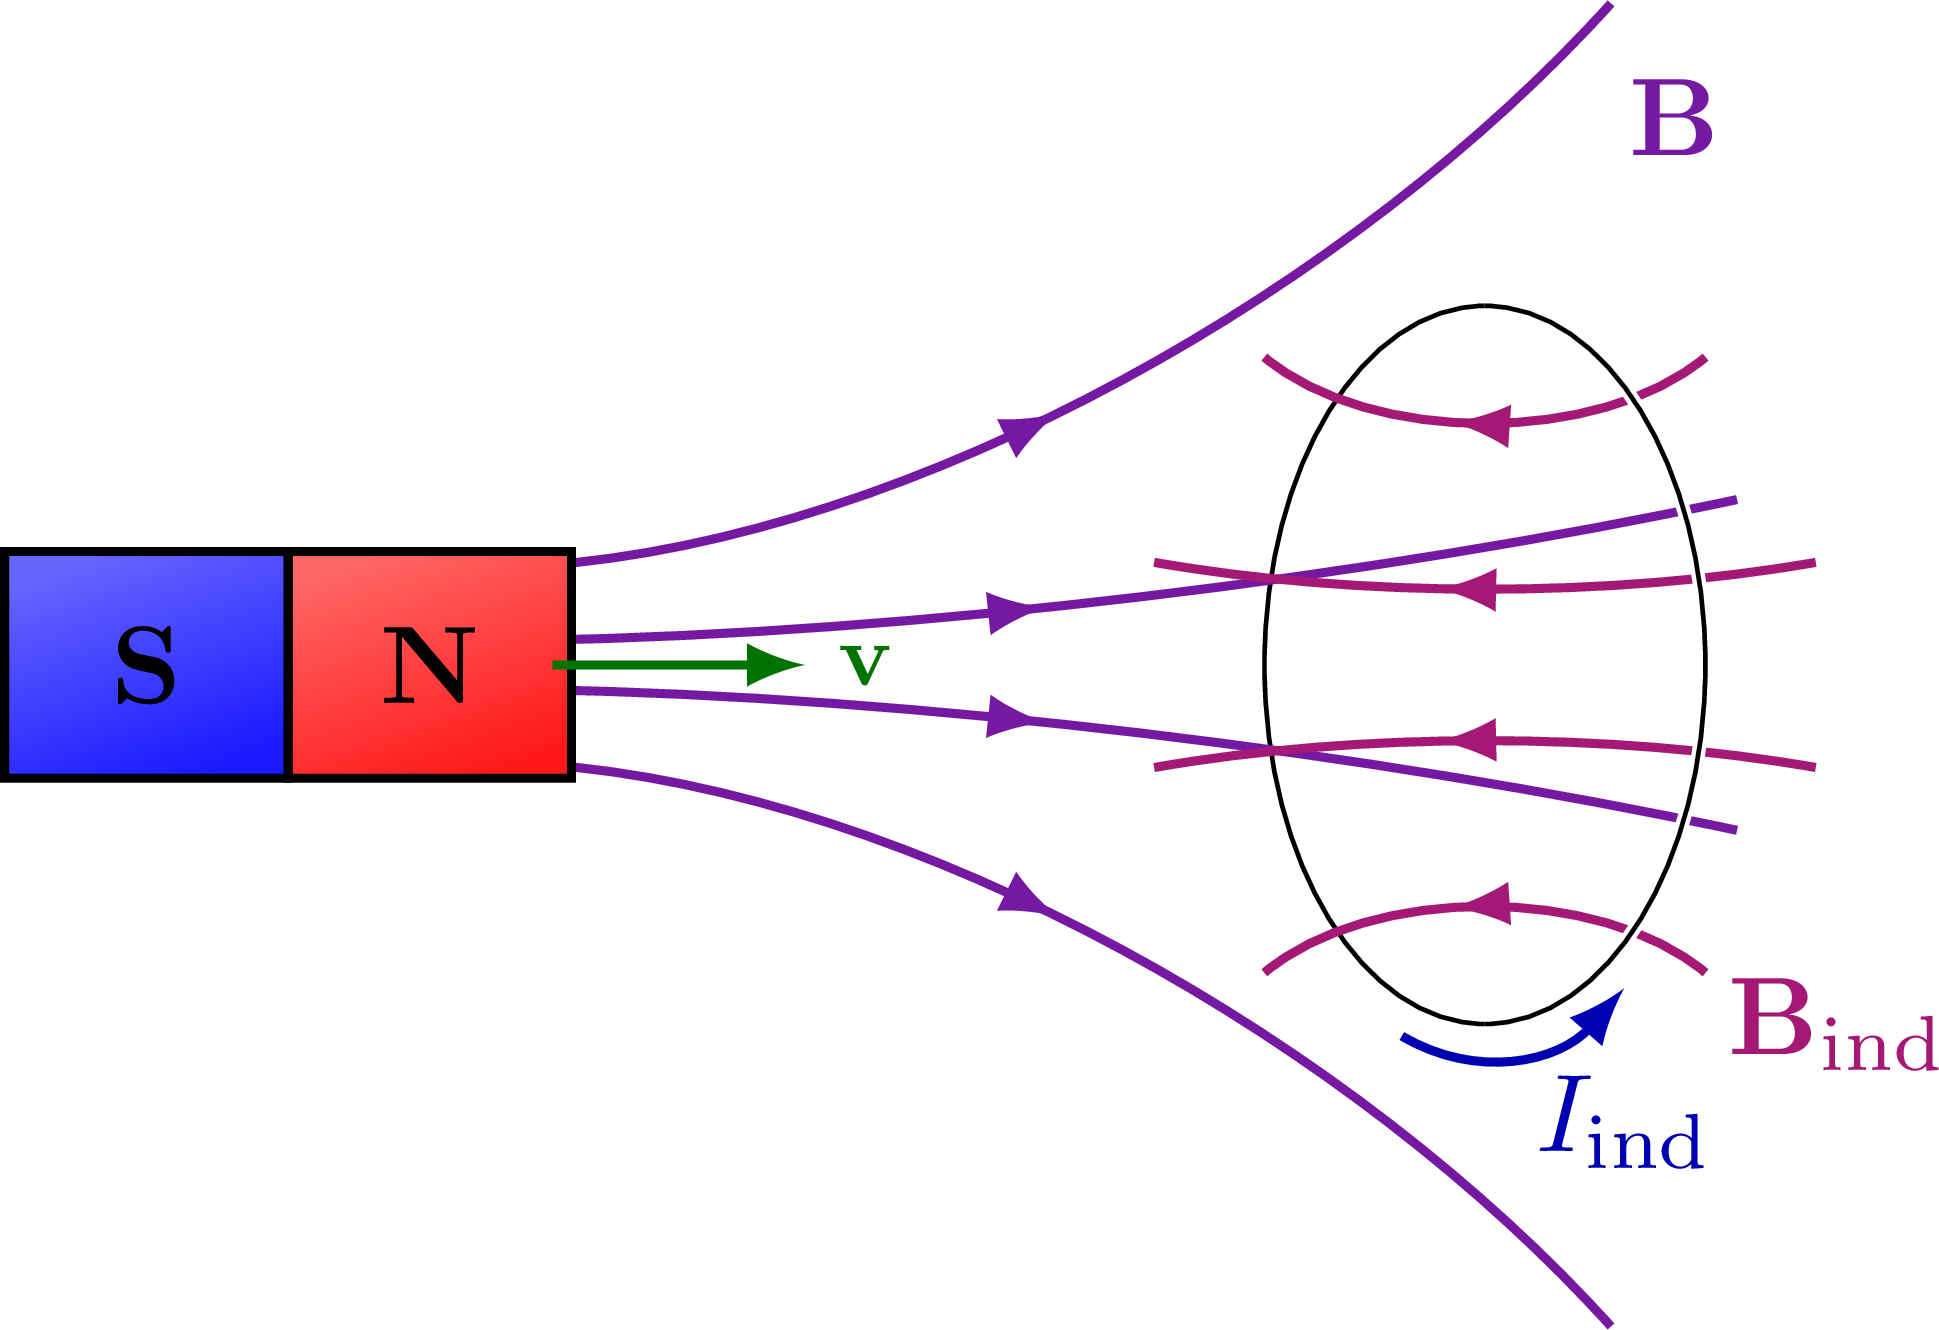 magnetic_field_lenzs_law-004.png